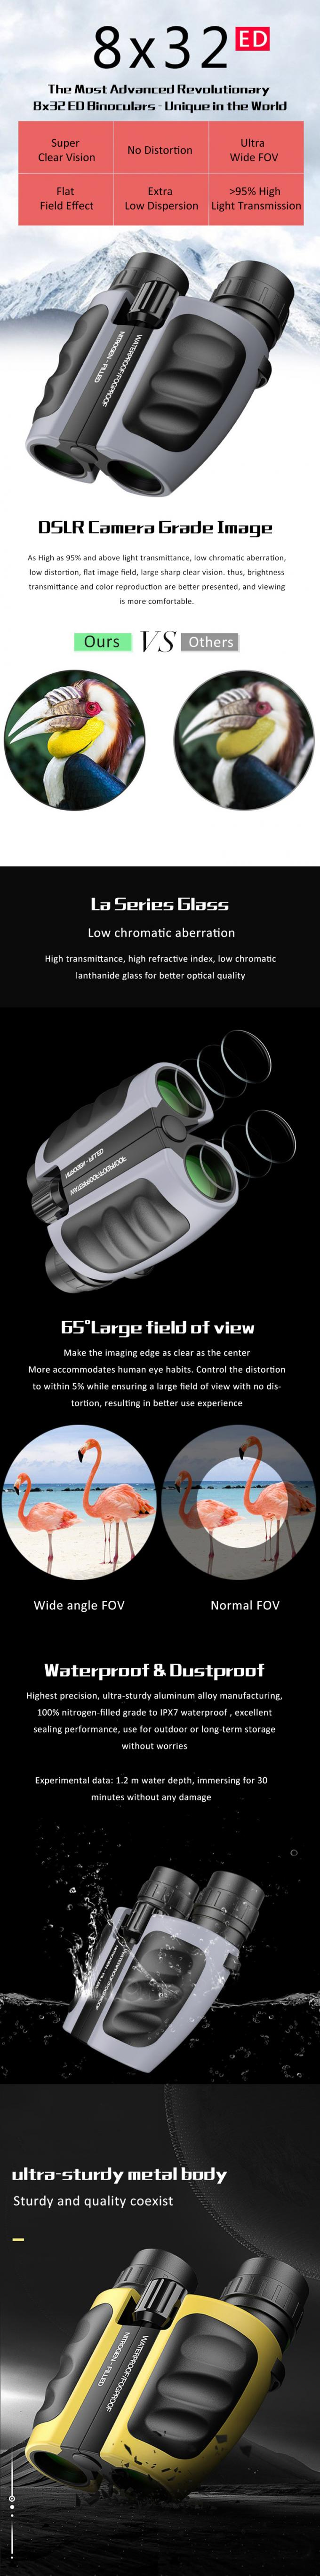 Anti - Porro 8x32 ED Binoculars For Hunting Camping , High Powered Binoculars